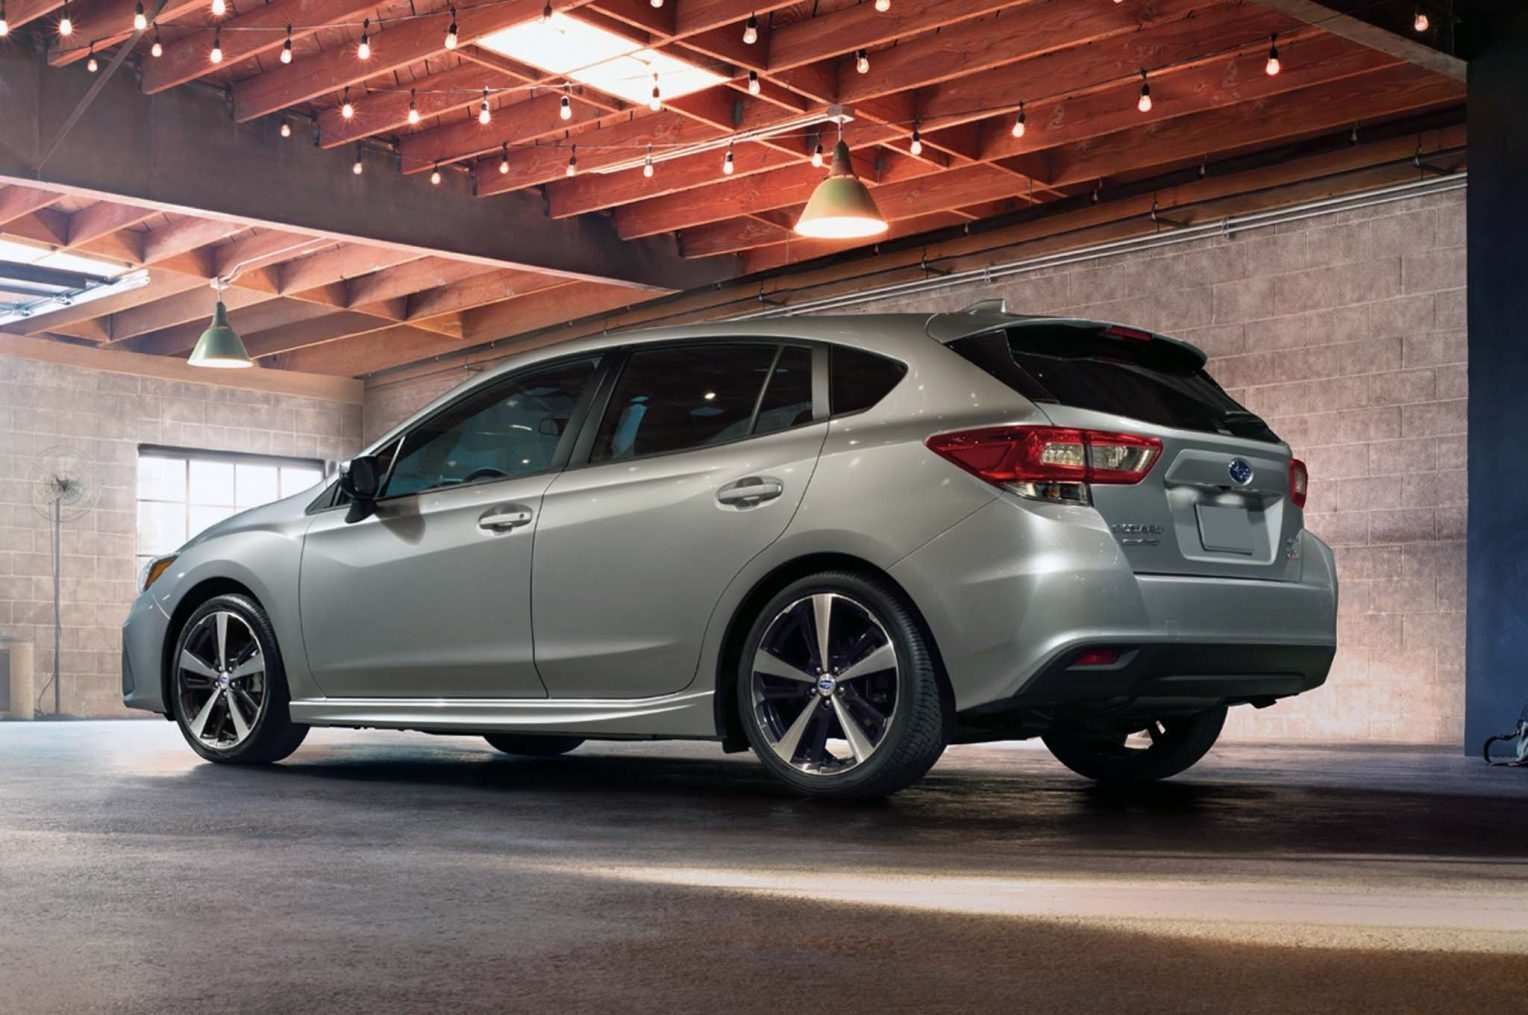 39 The Subaru Hatchback 2019 Release Date And Specs Pricing for Subaru Hatchback 2019 Release Date And Specs